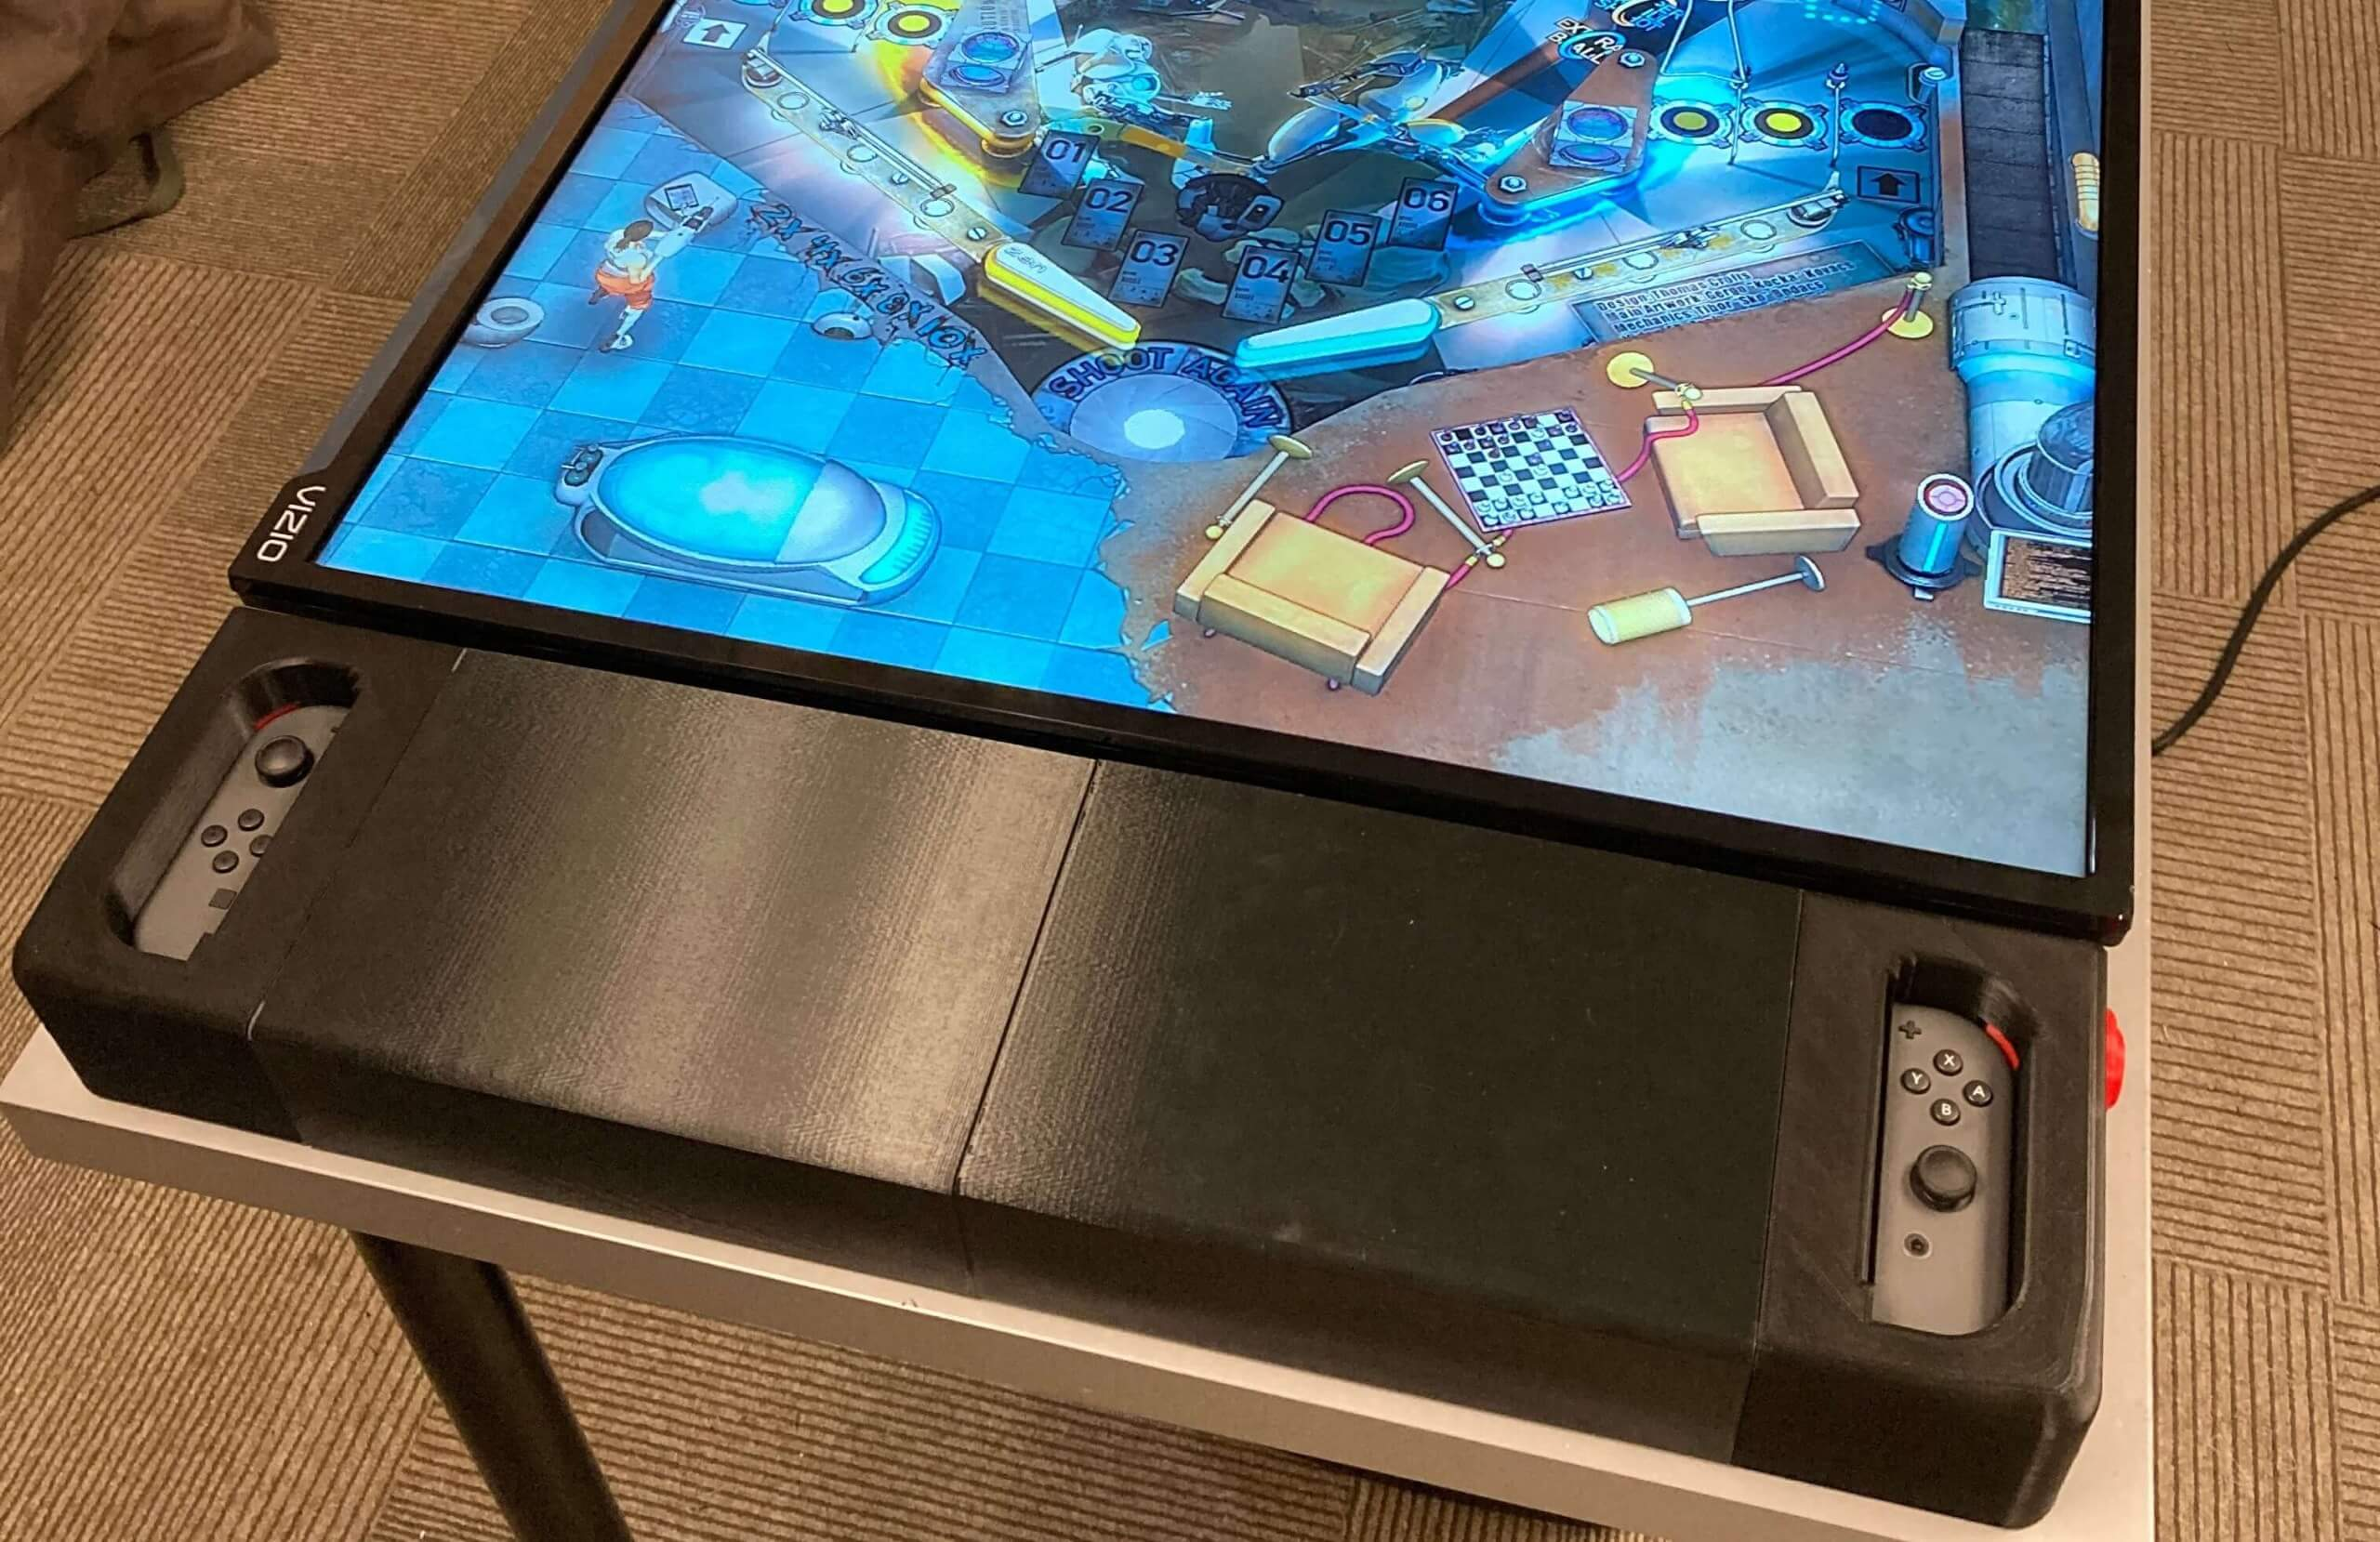 Turn your Switch into a full-size pinball machine with a 3D printer